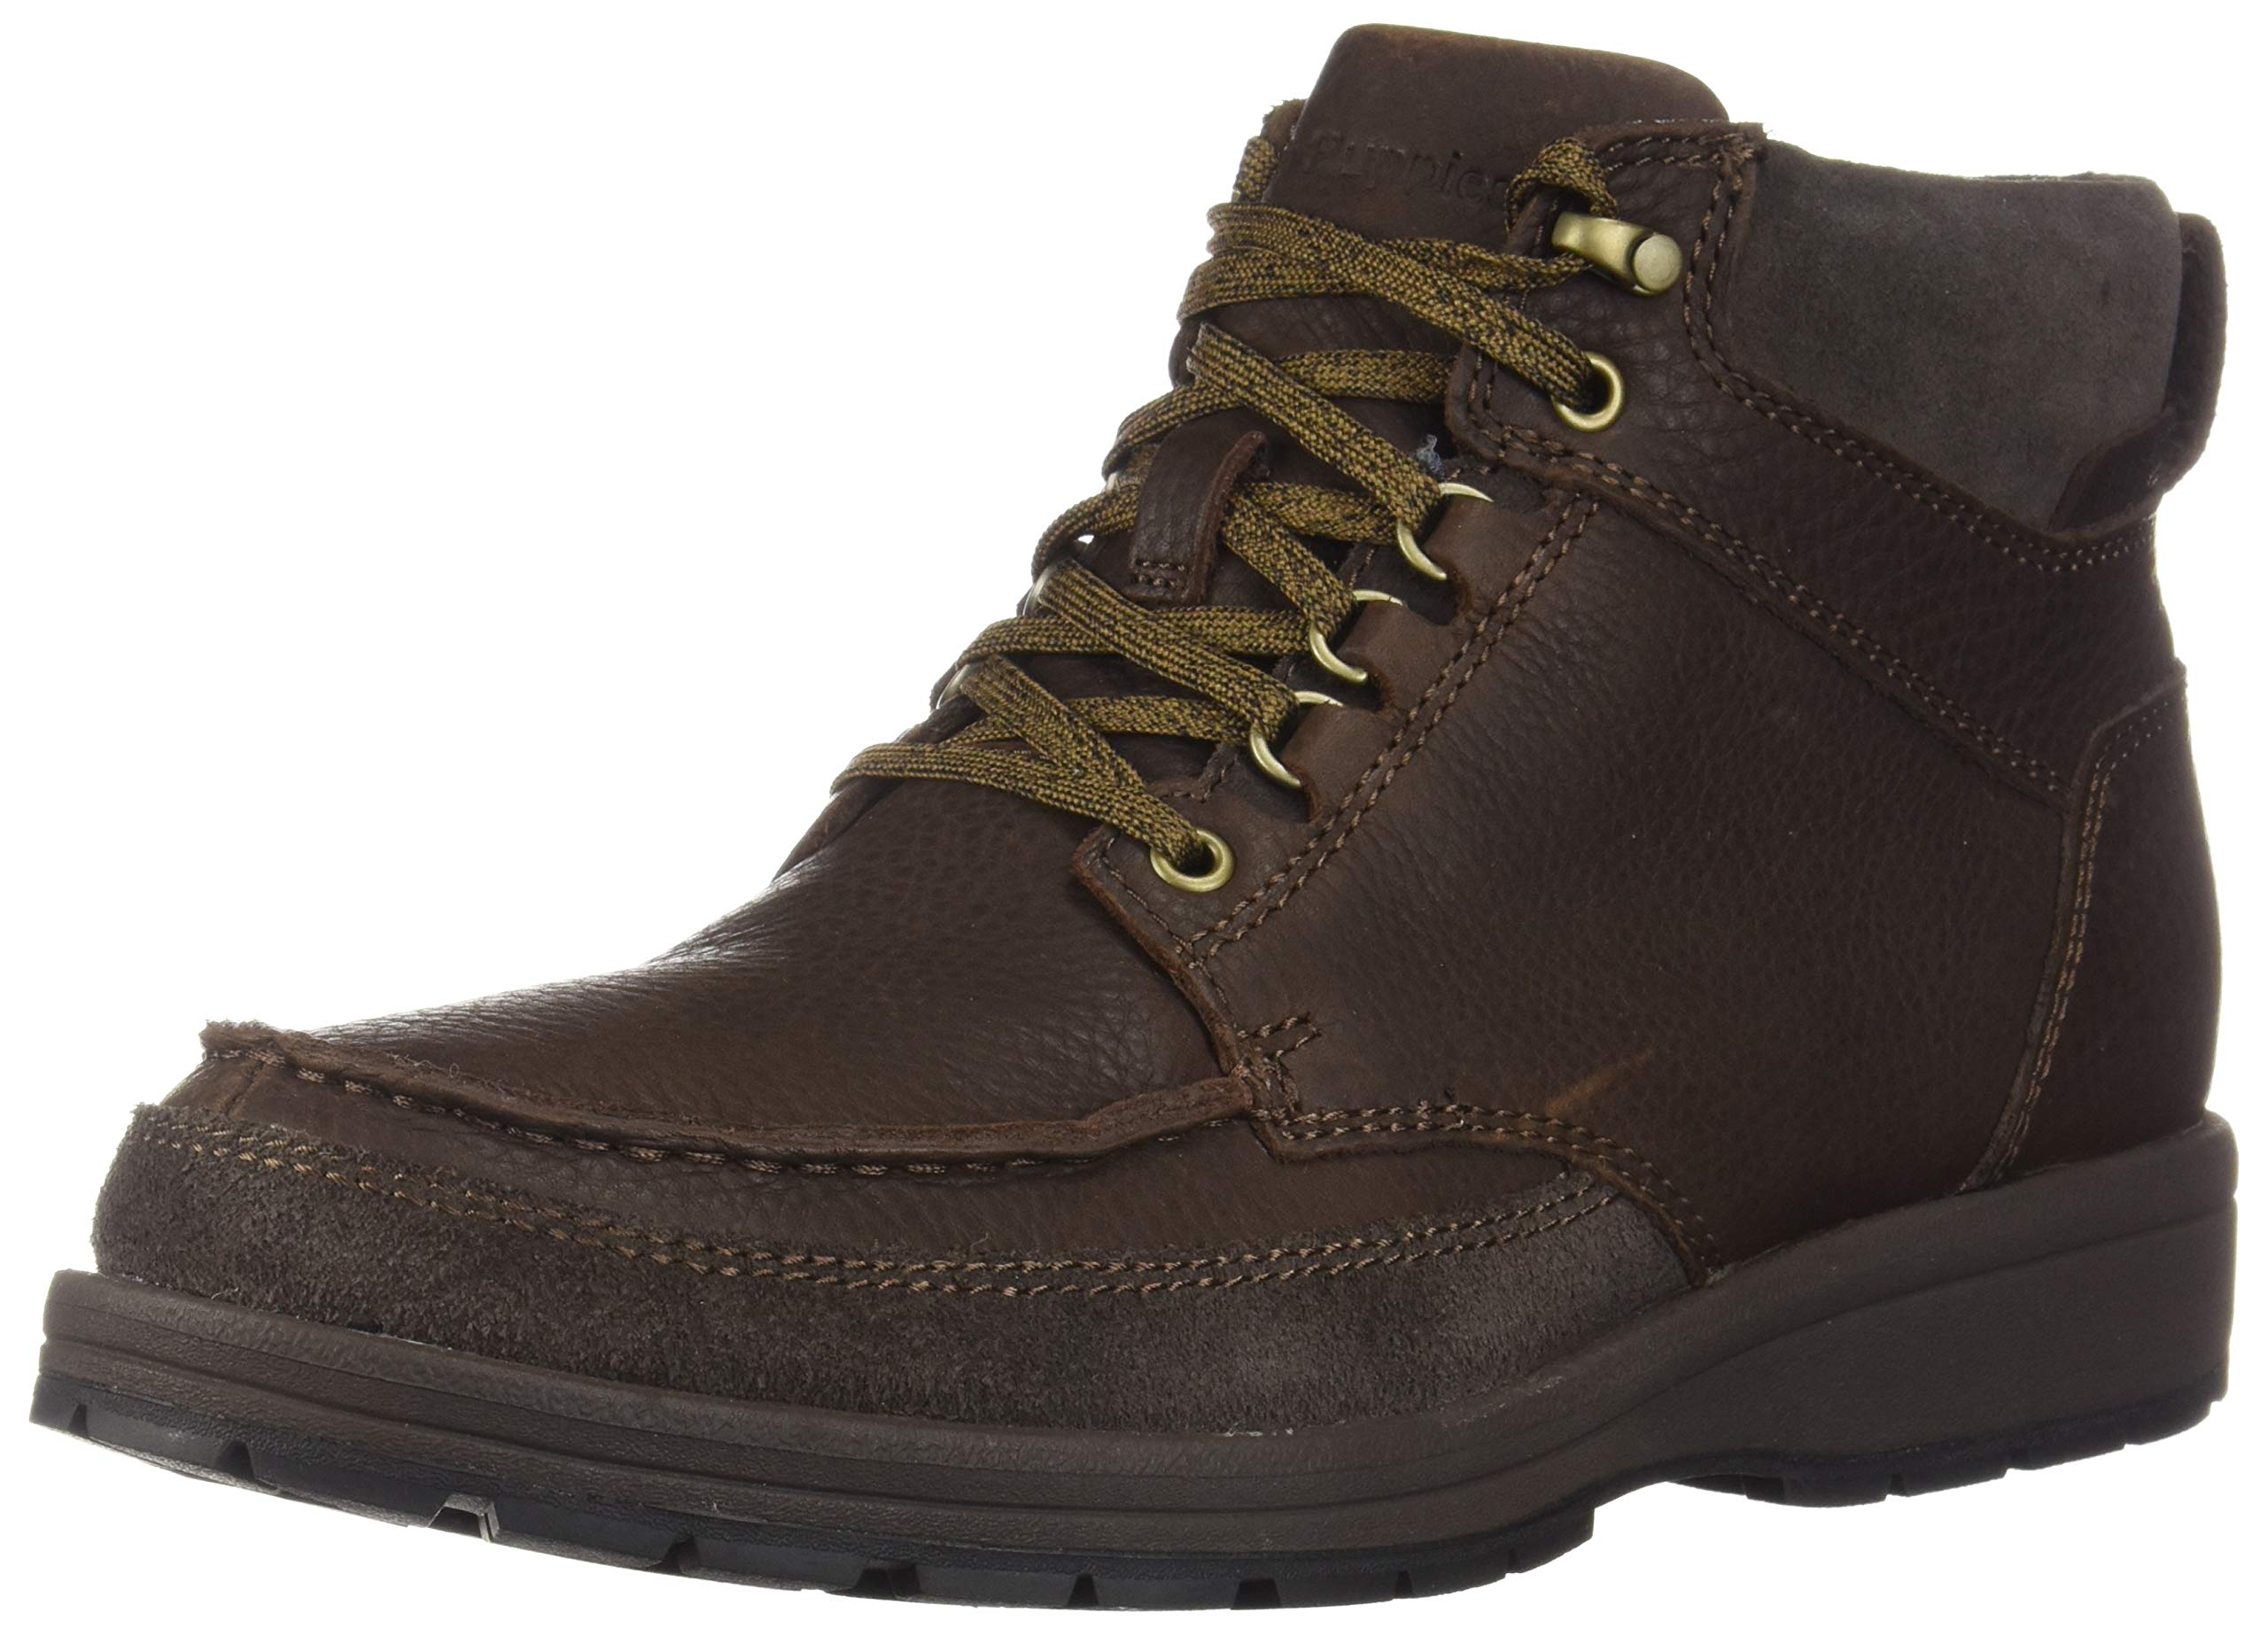 Hush Puppies Men's Beauceron Tall ICE+ Oxford Boot, Dark Brown wp Leather, 10.5 M US